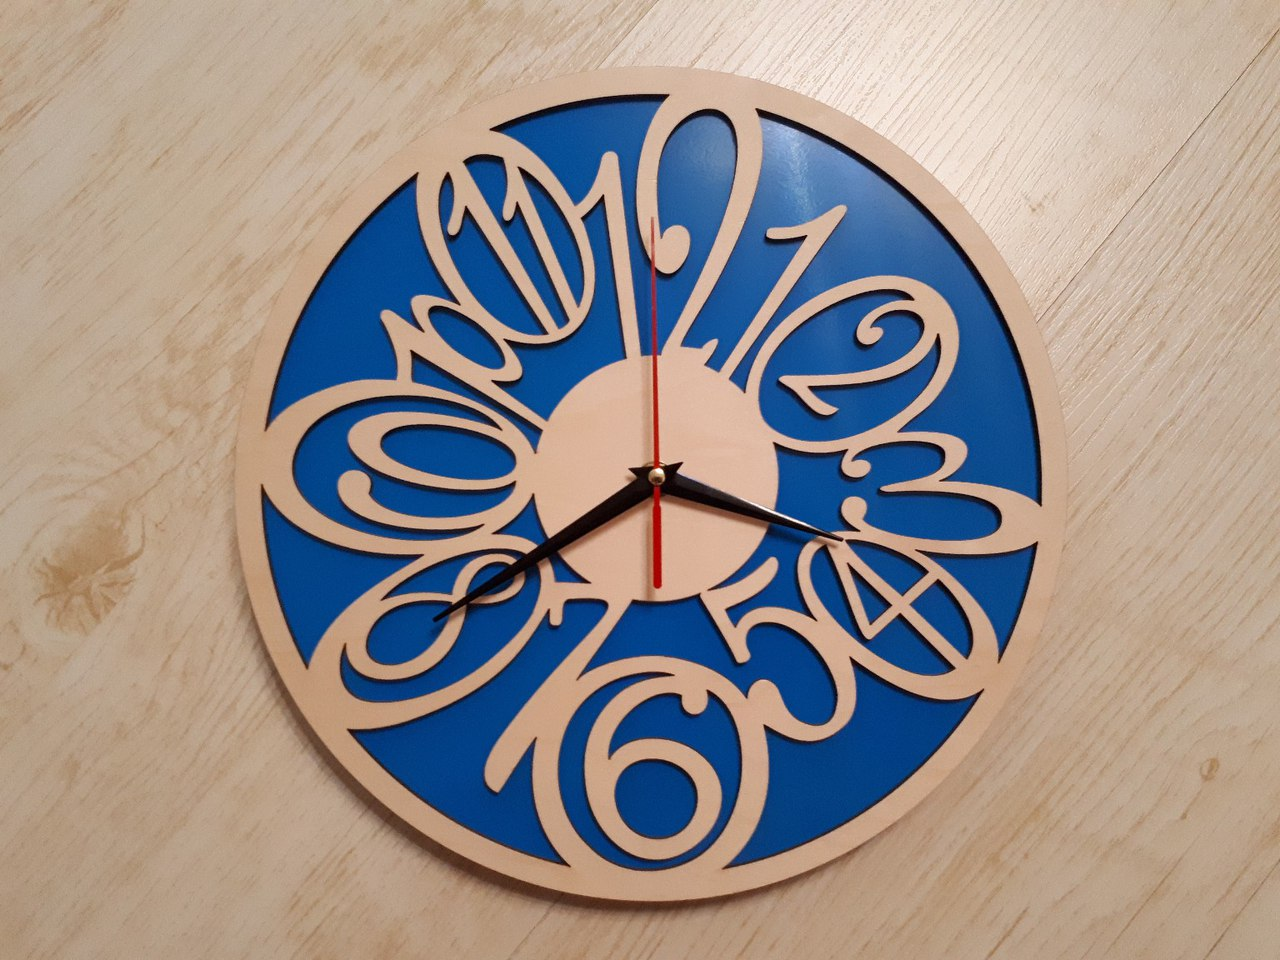 Plywood Clock Face Dxf File Free Download 3axisco